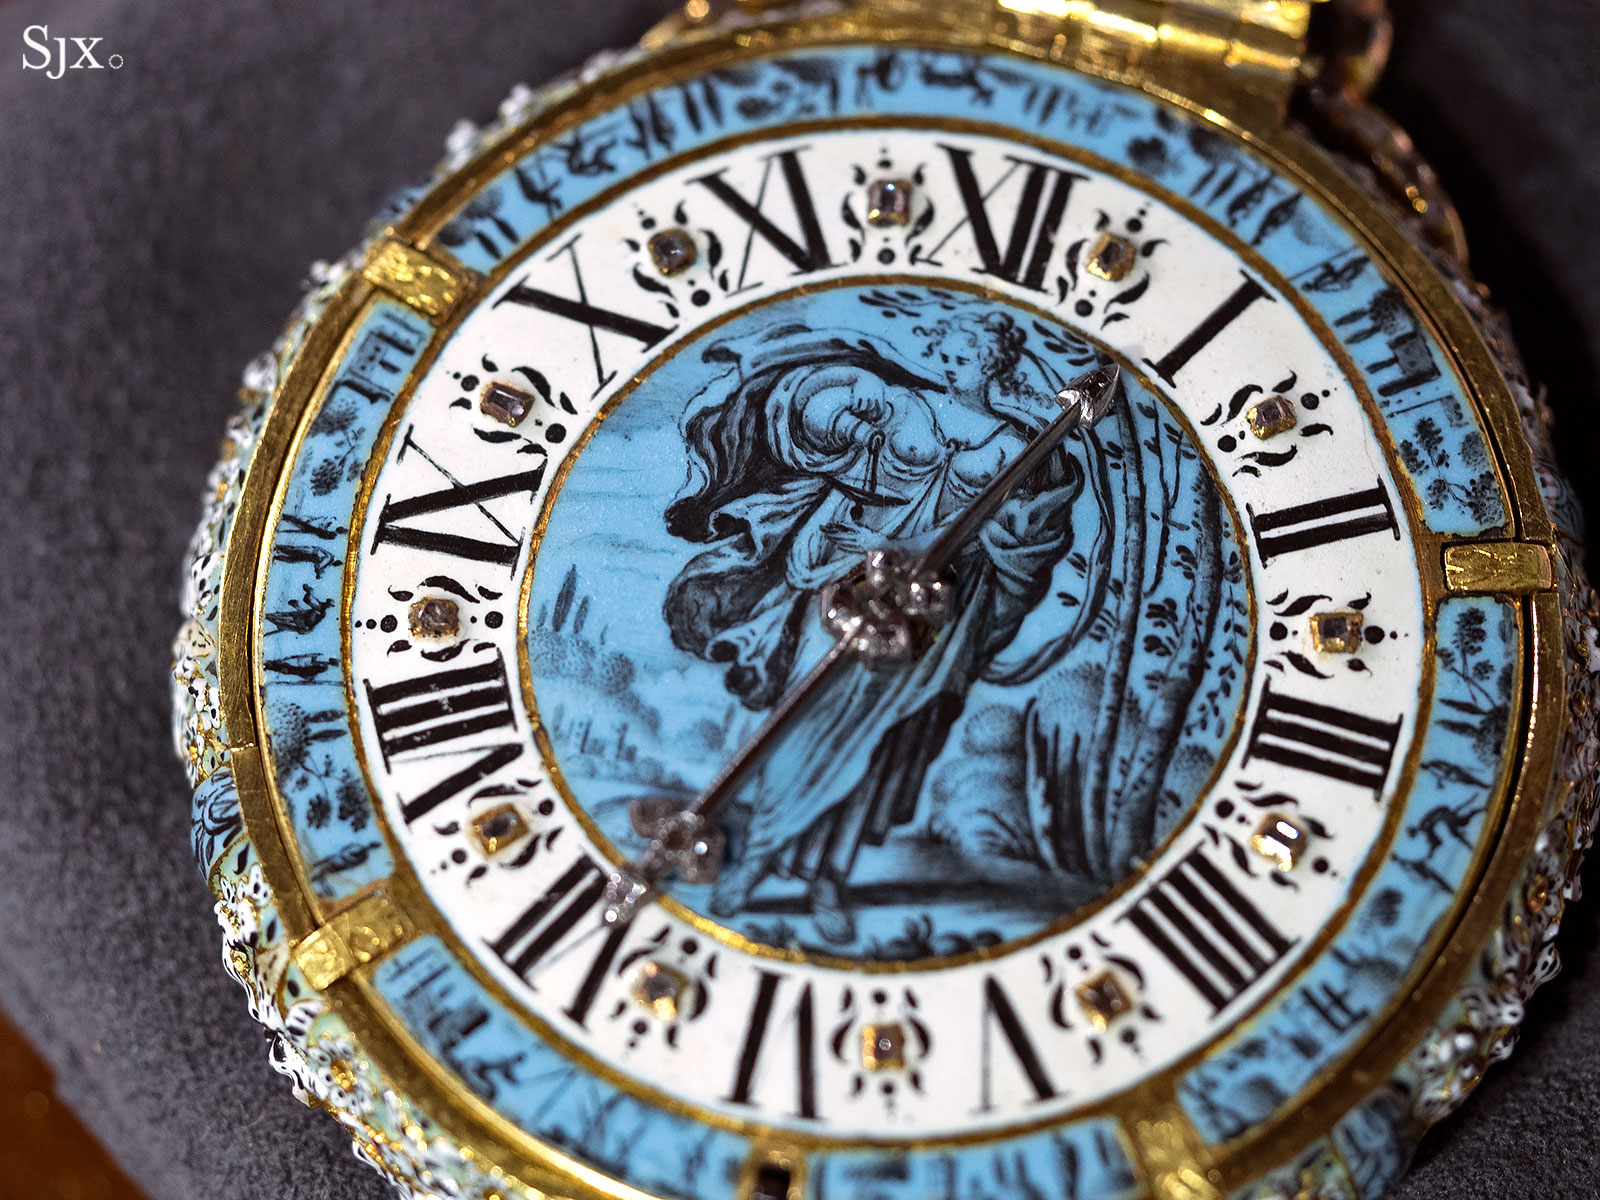 Jehan Cremsdorff enamel verge watch 1650-7